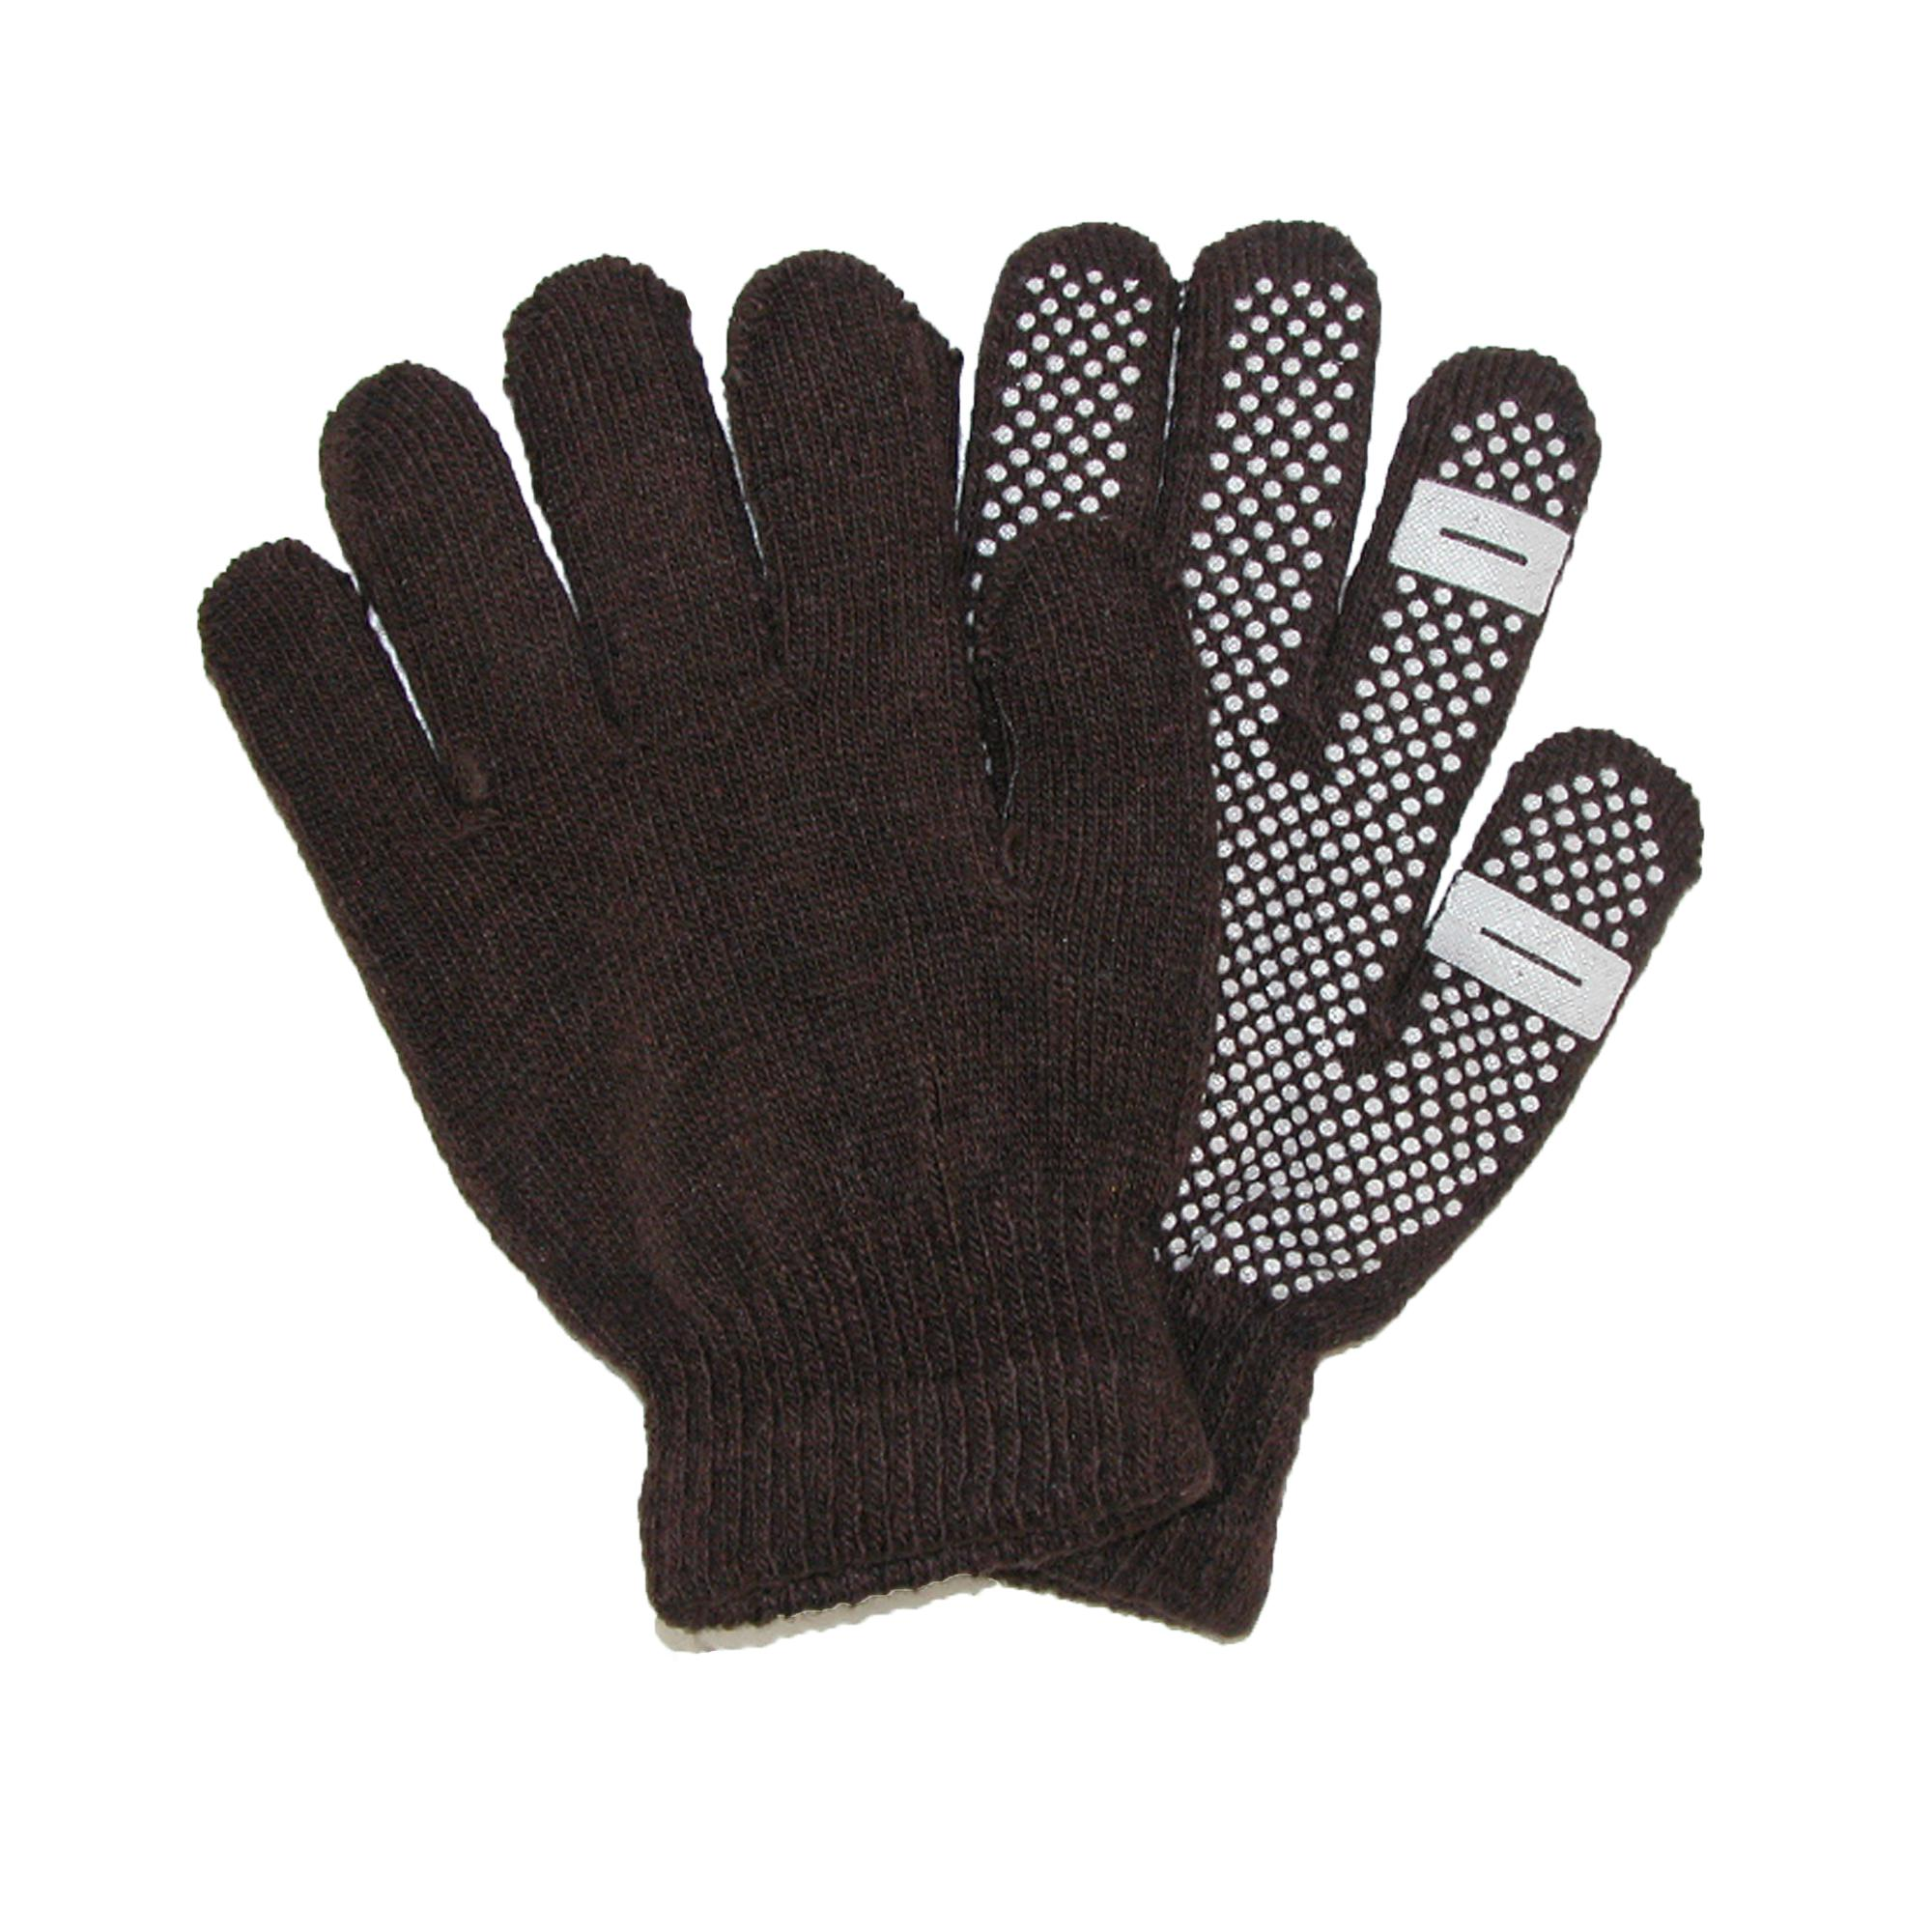 Ctm Womens Grip Knit Texting Winter Gloves